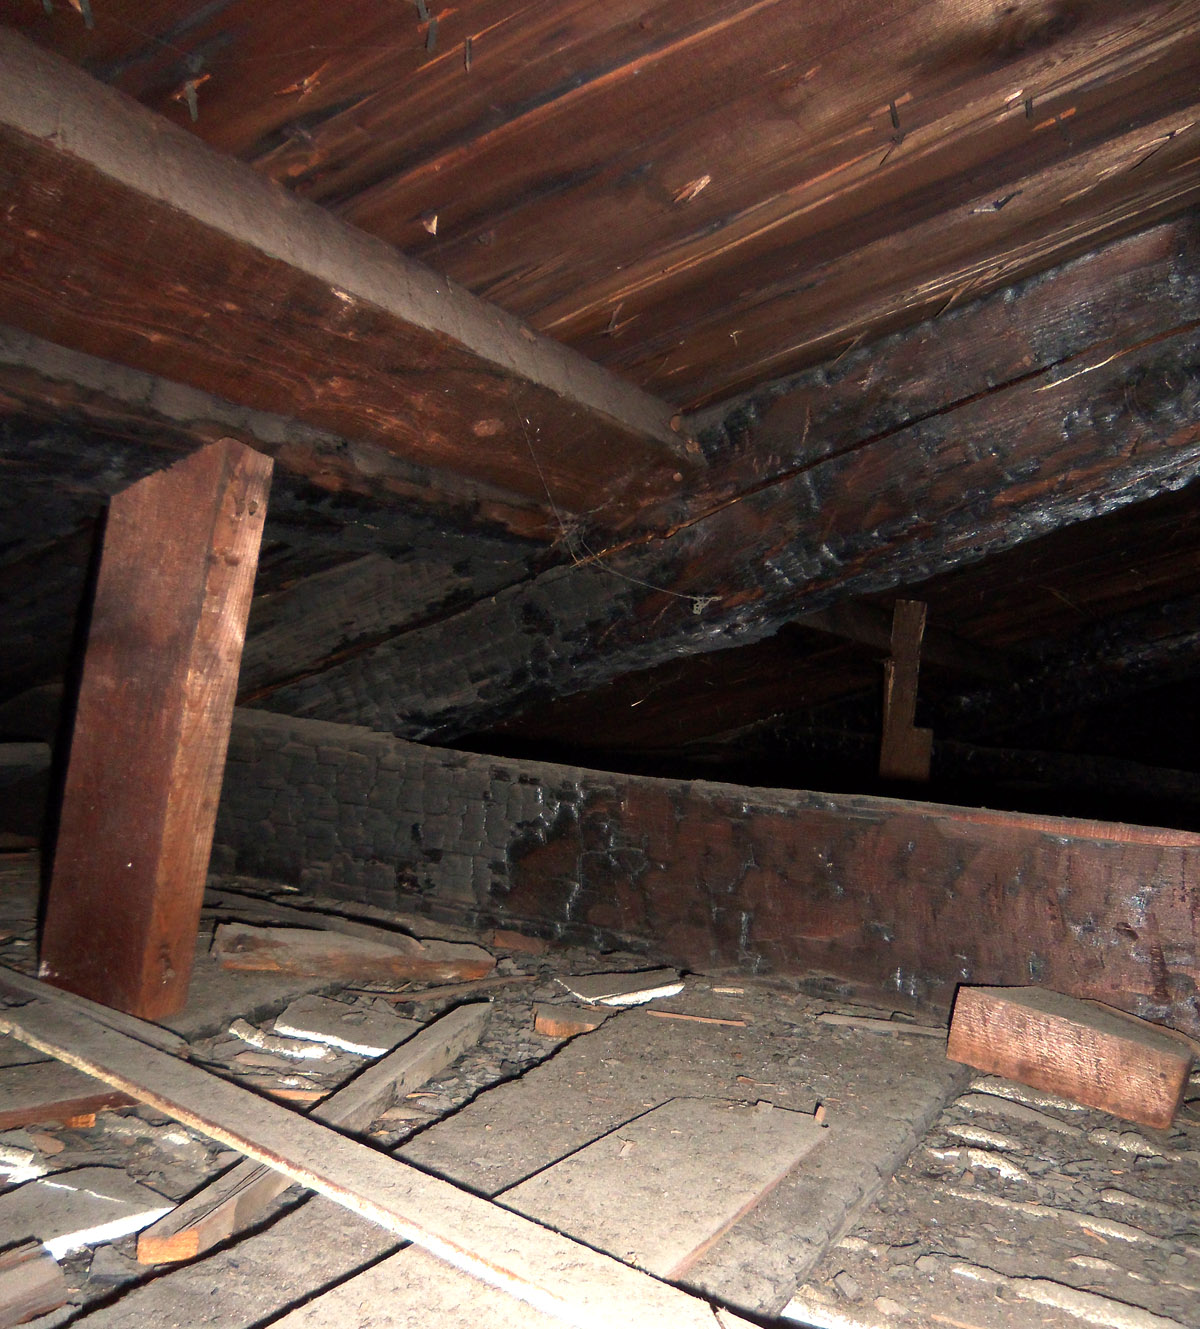 north-main-12-attic-firre